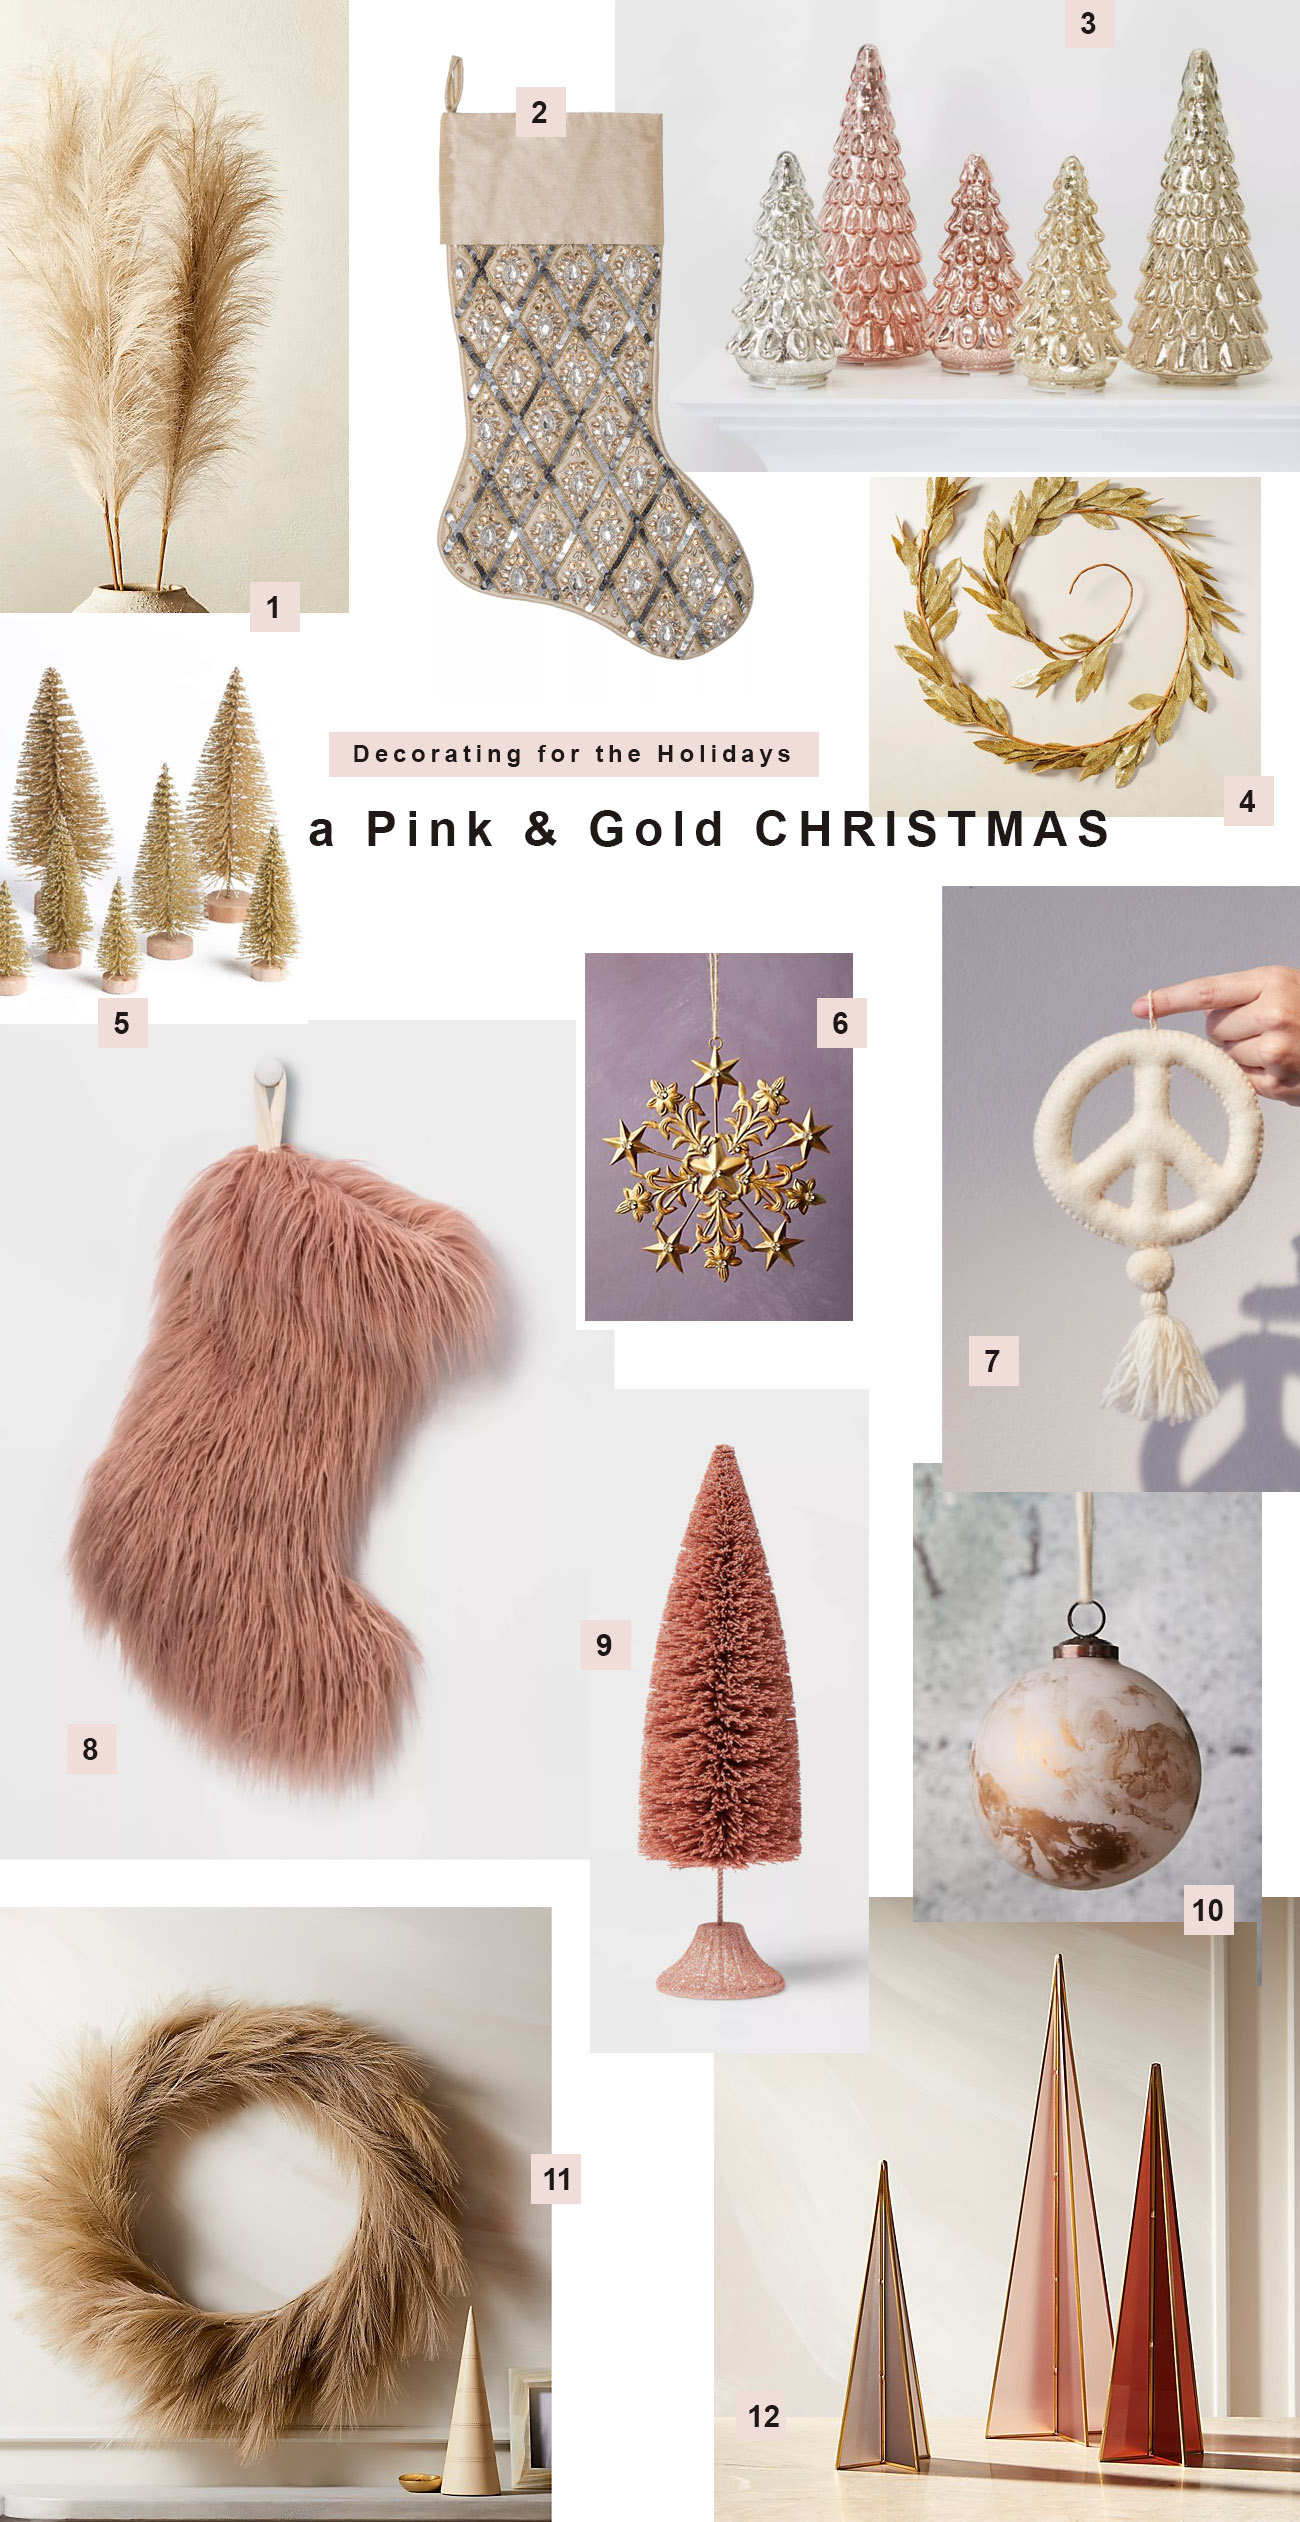 Decoring for Christmas in Pink and Gold